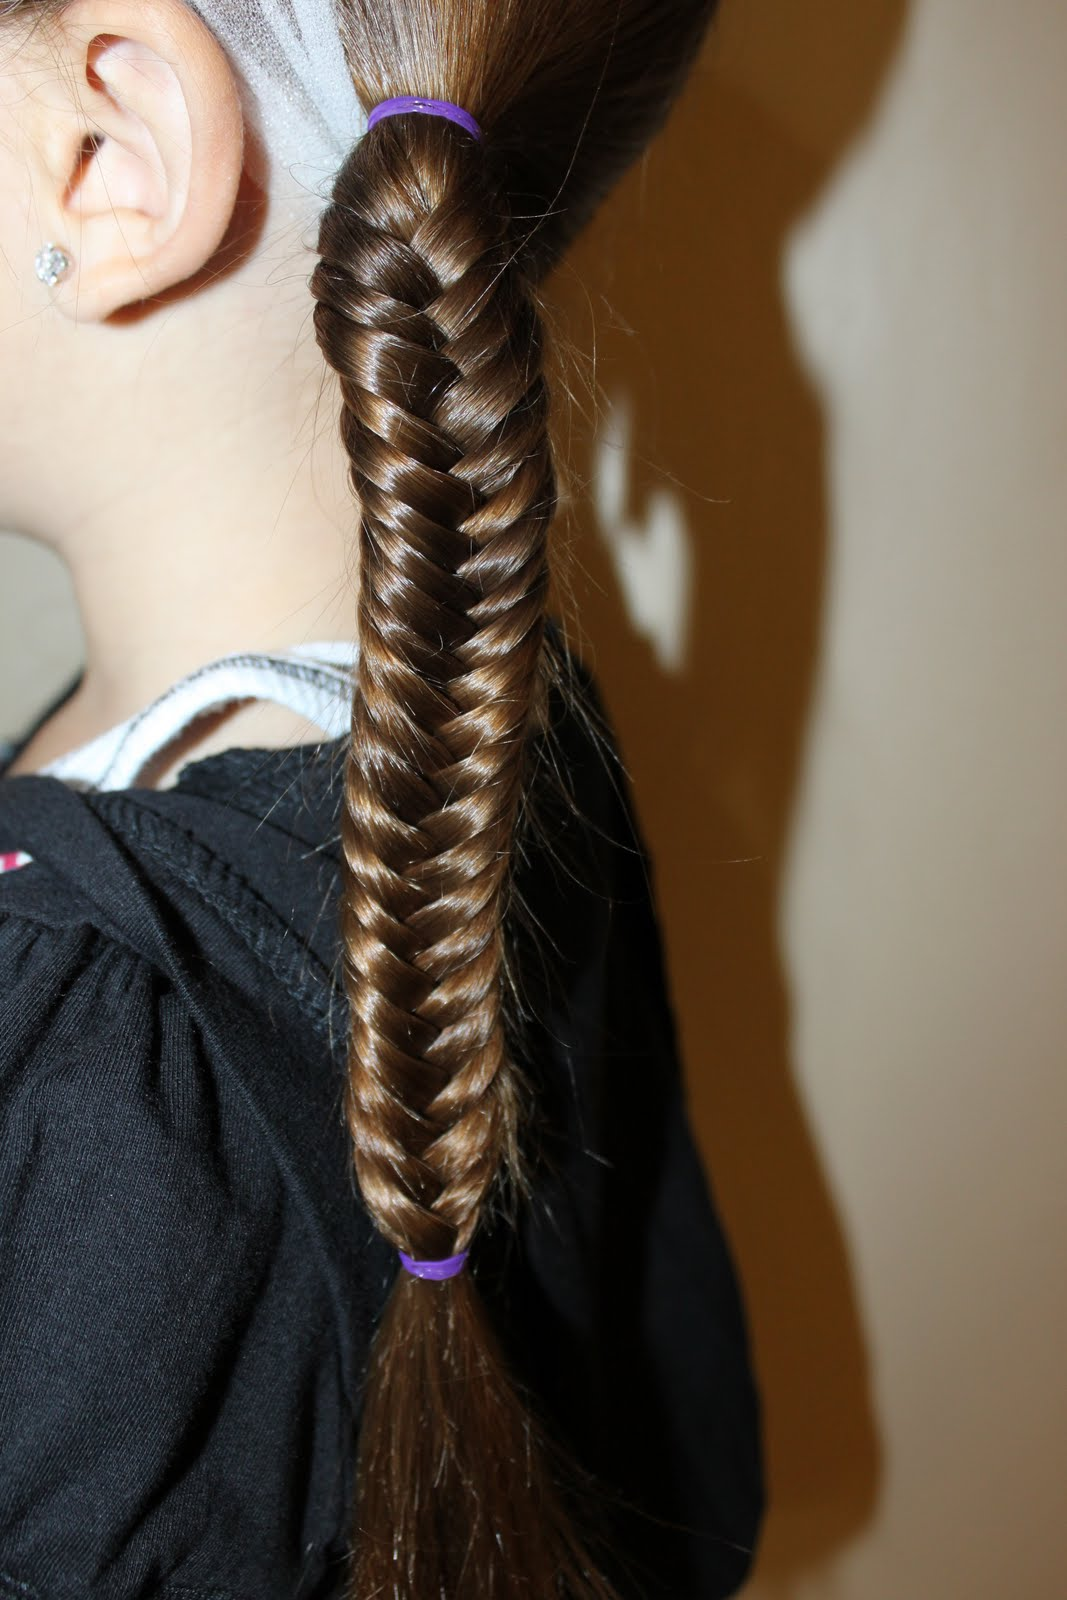 Hairstyles for Girls.. The Wright Hair: FishTail Braids